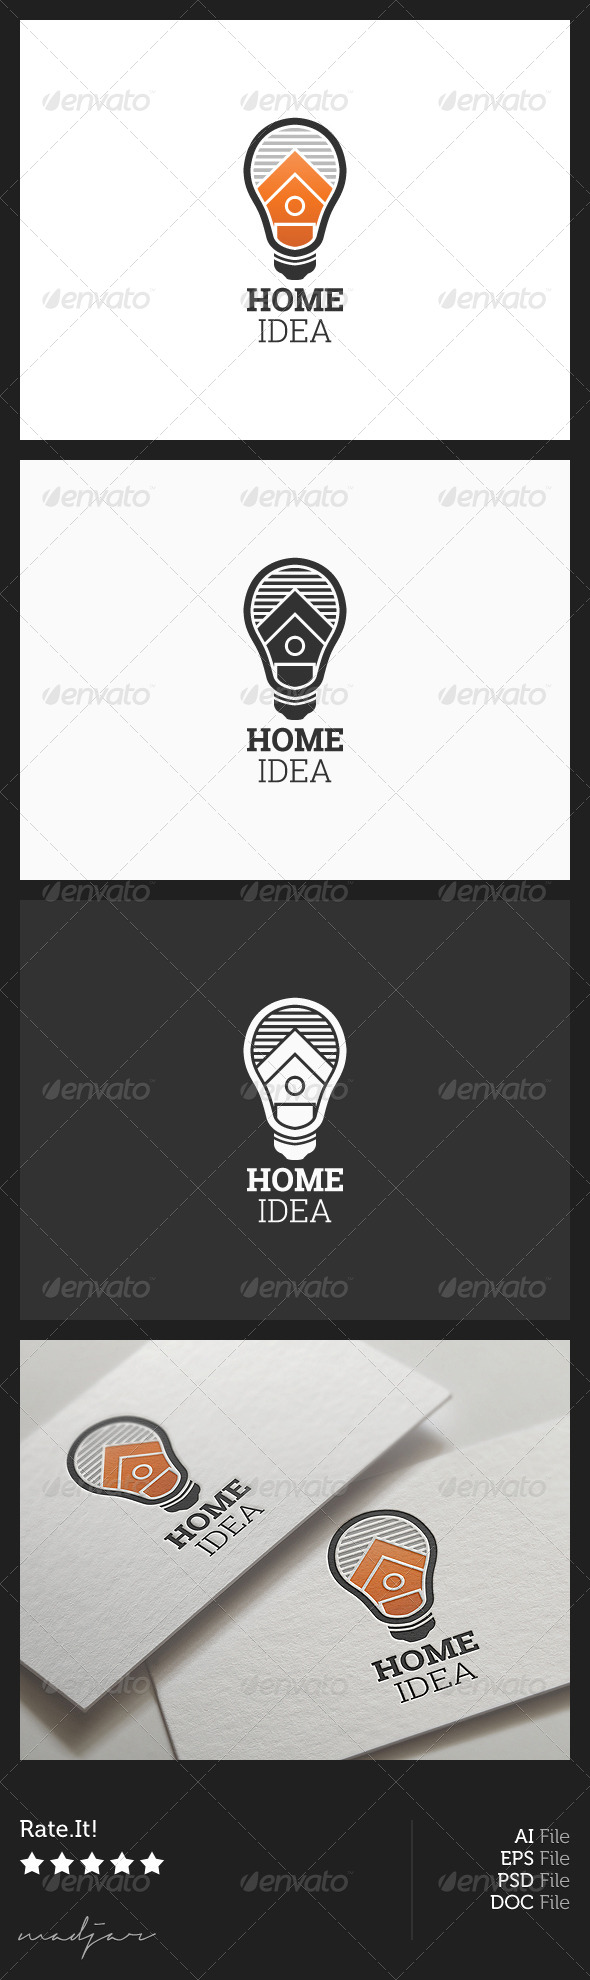 Home Idea Logo - Buildings Logo Templates